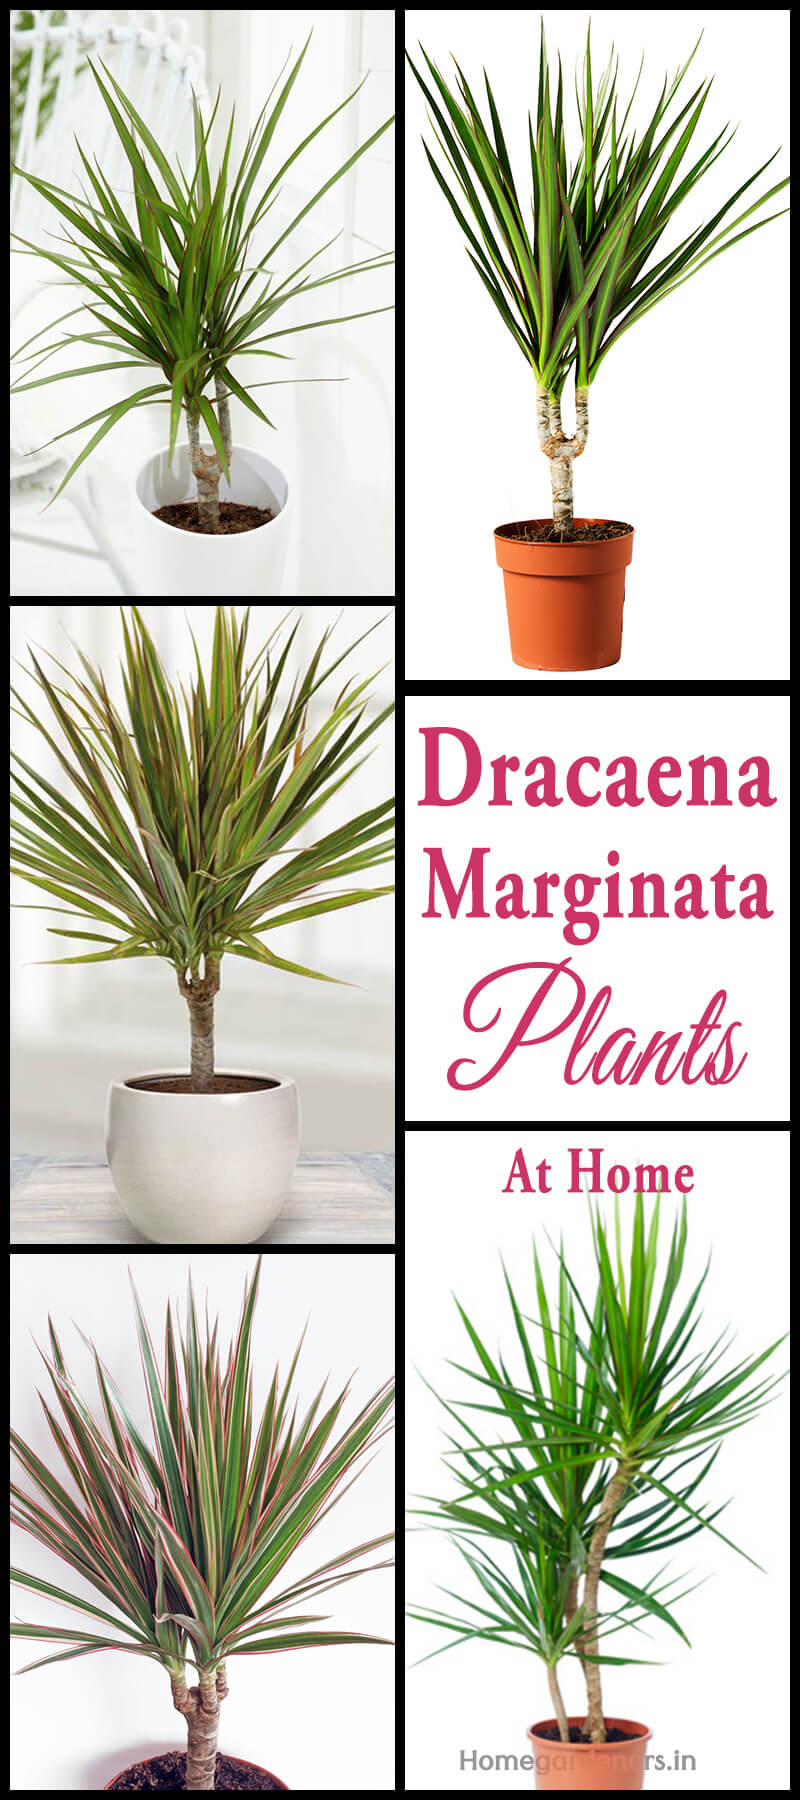 How do you Care for Dracaena Marginata Plant at Home